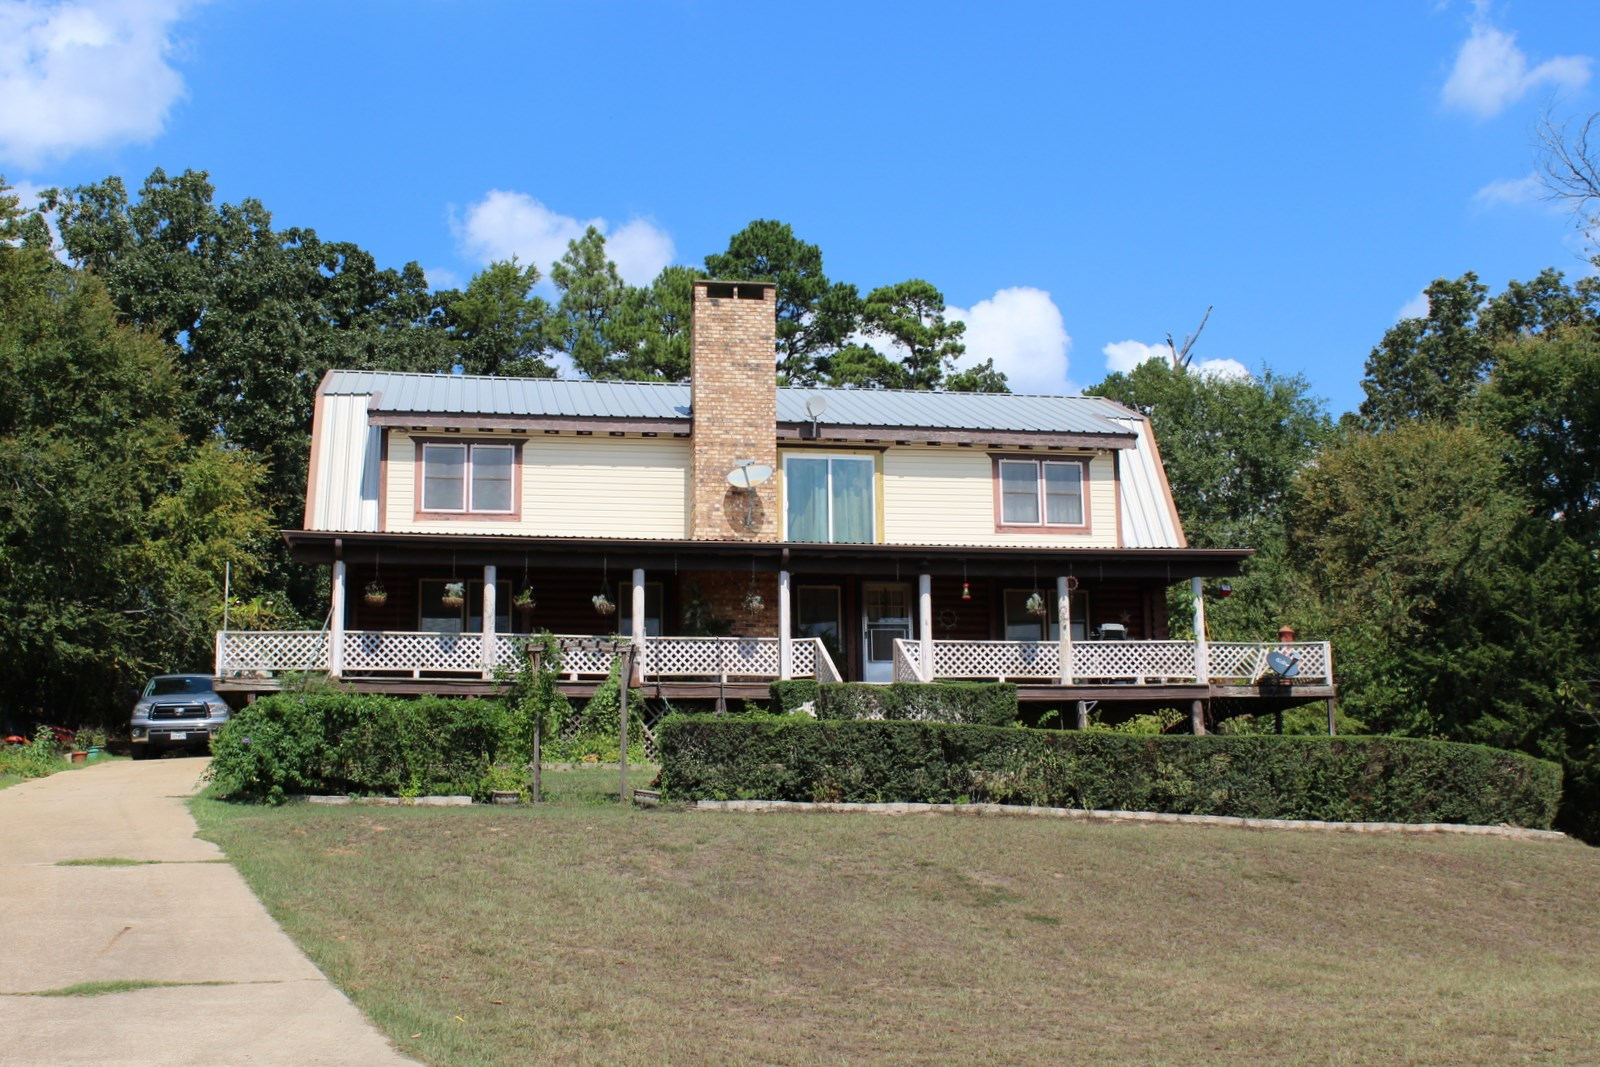 EAST TEXAS COUNTRY HOME + 3 ACRE PRIVATE LAKE  + 54 ACRES